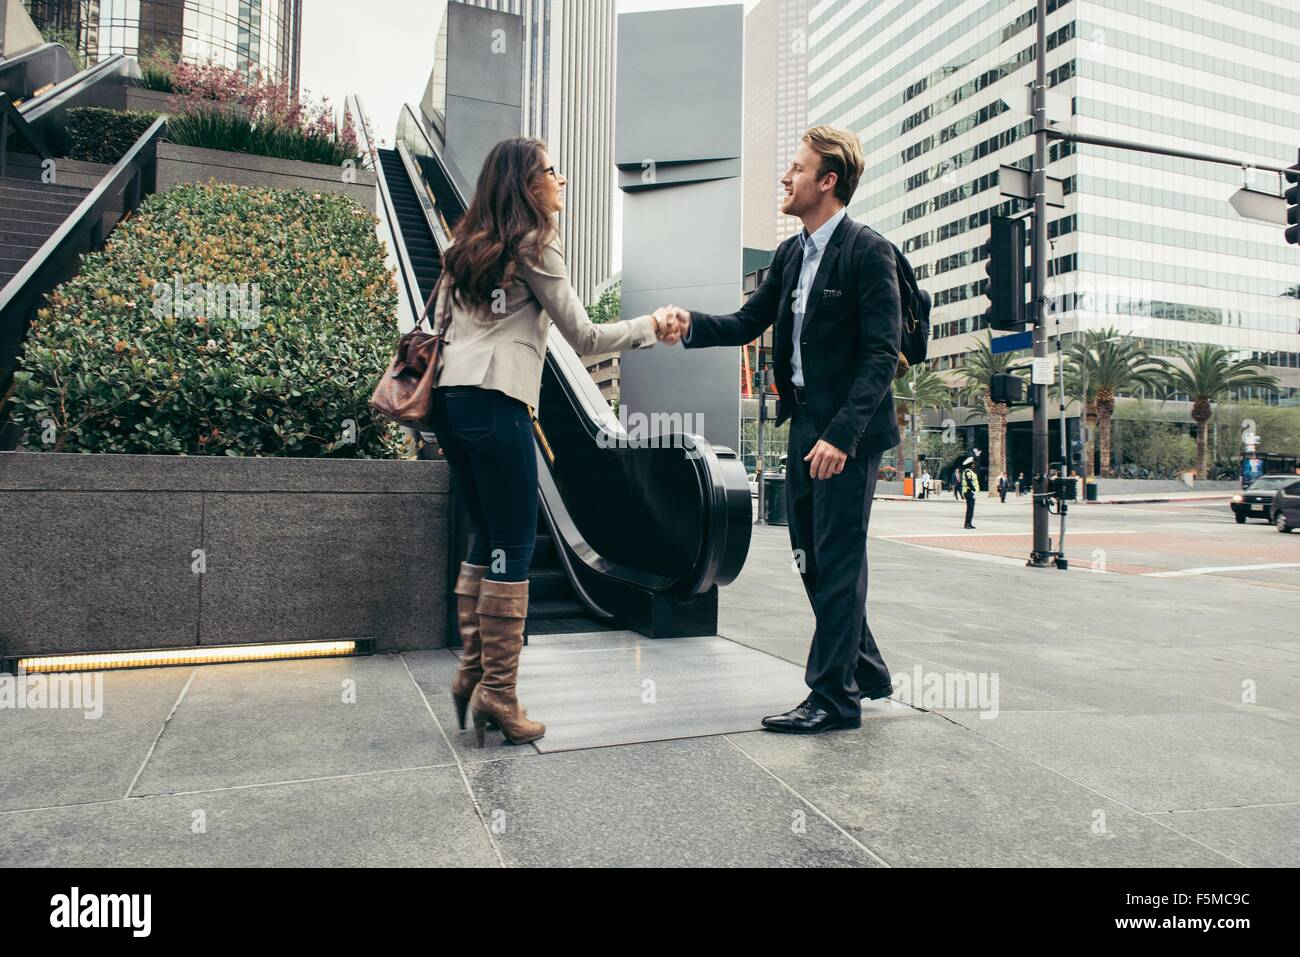 Businessman and woman shaking hands in city - Stock Image